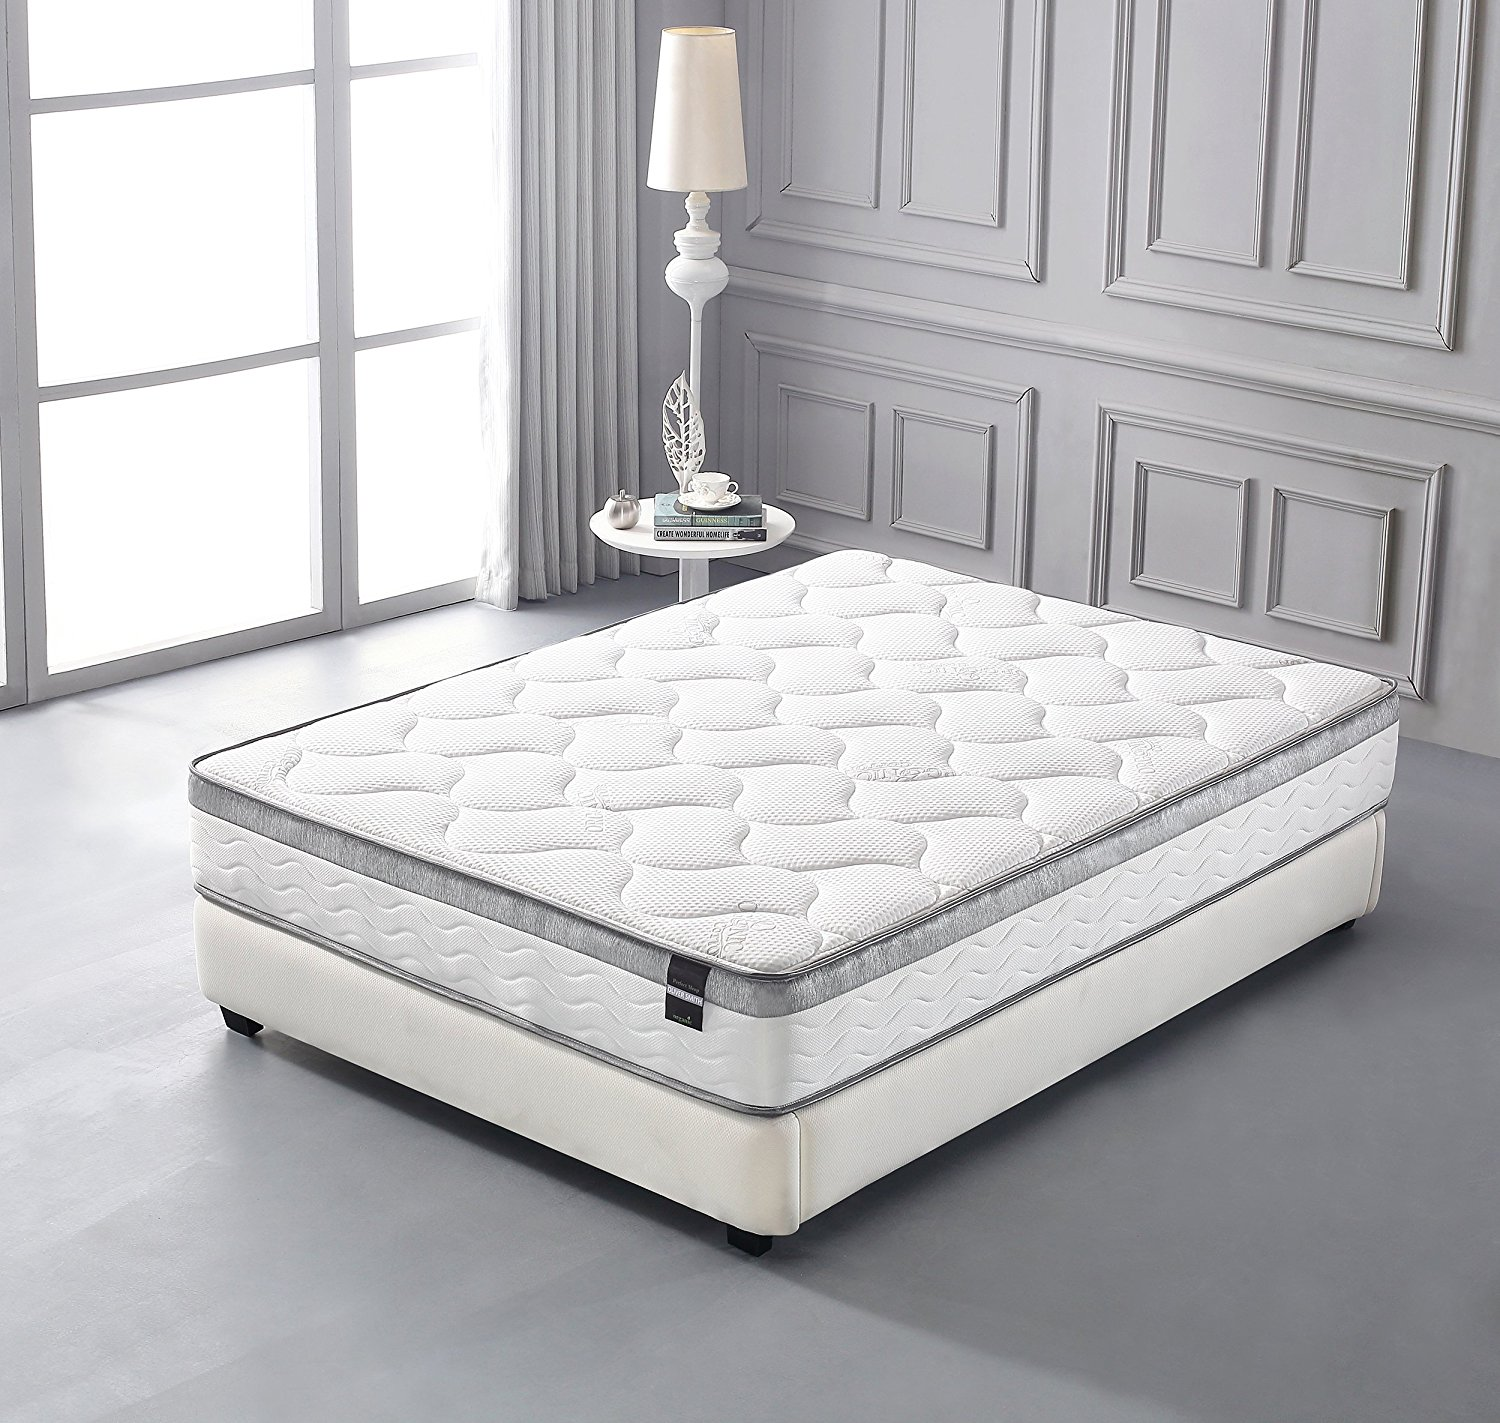 beds foam vs comfort compared memory to personal number mattress comforter series bed sleep